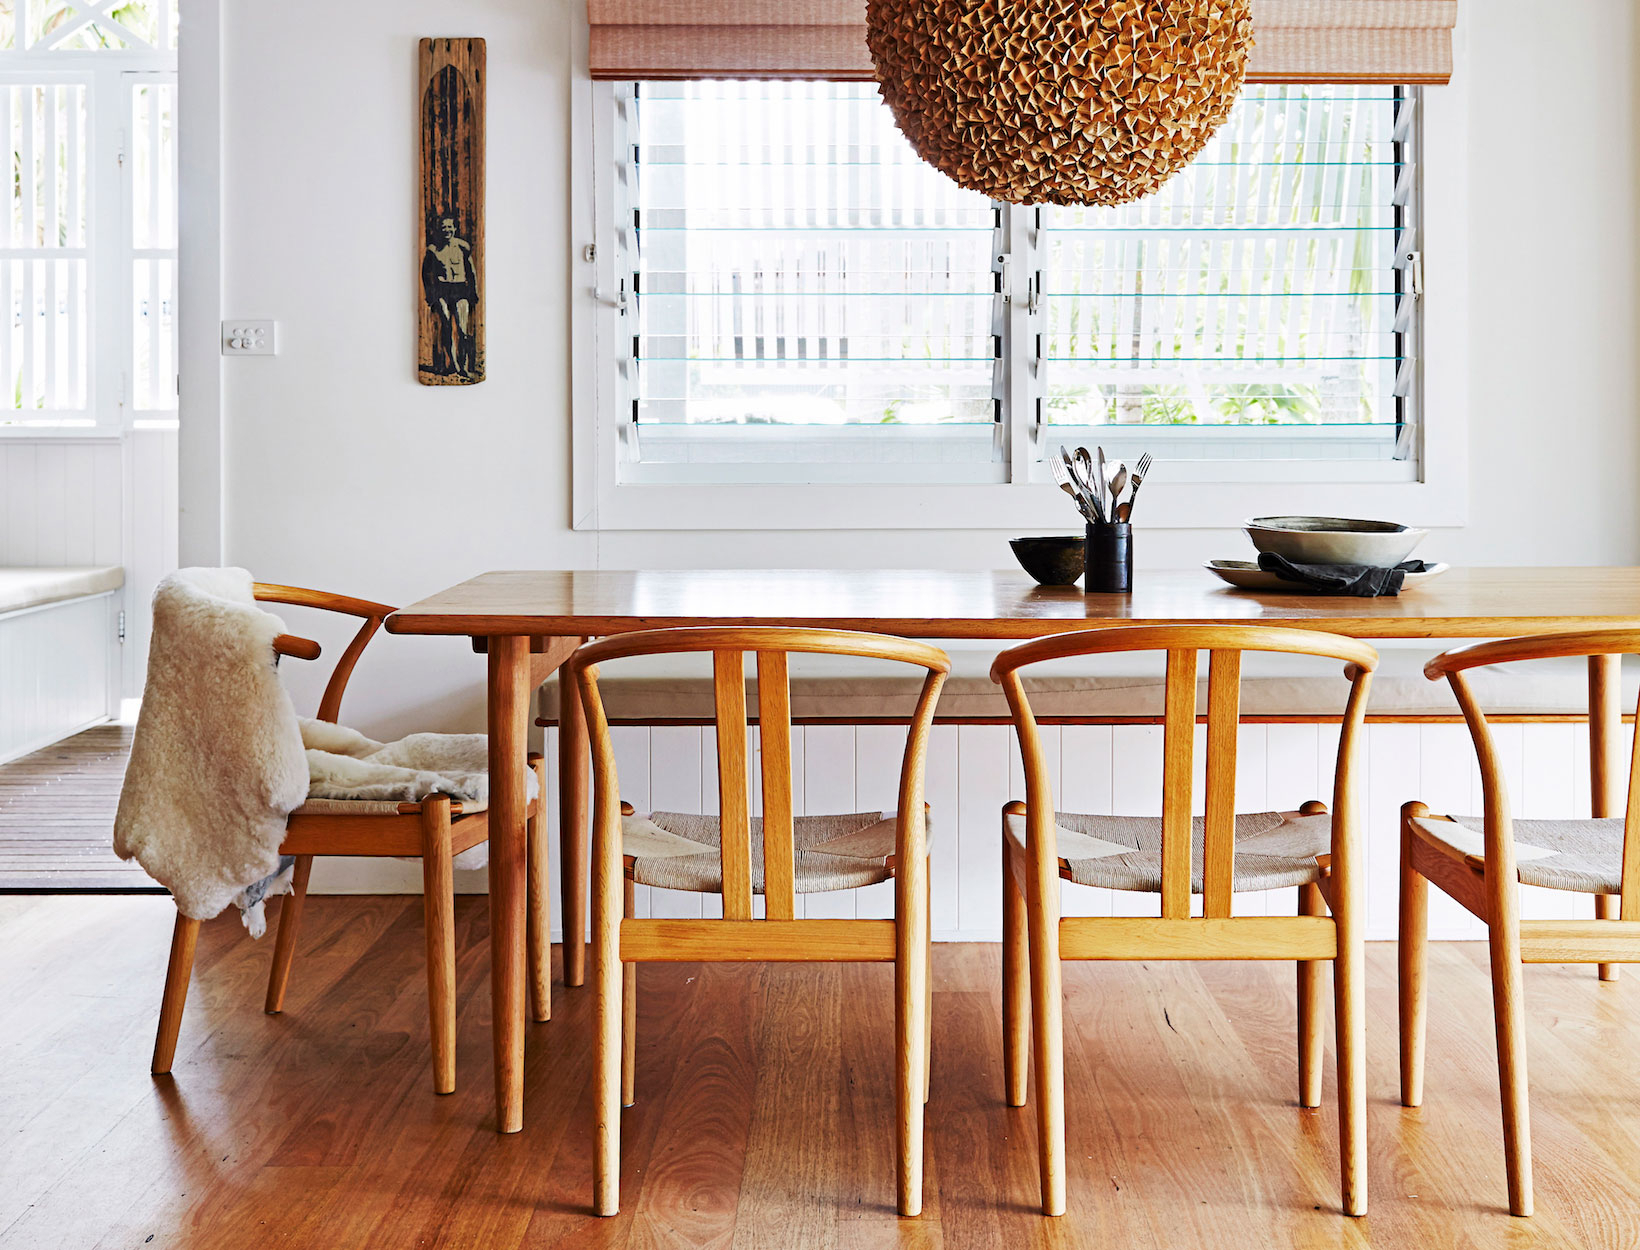 8 Design Professionals On Their Favorite Dining Tables | Goop Inside 2018 Johnson Round Pedestal Dining Tables (View 13 of 25)